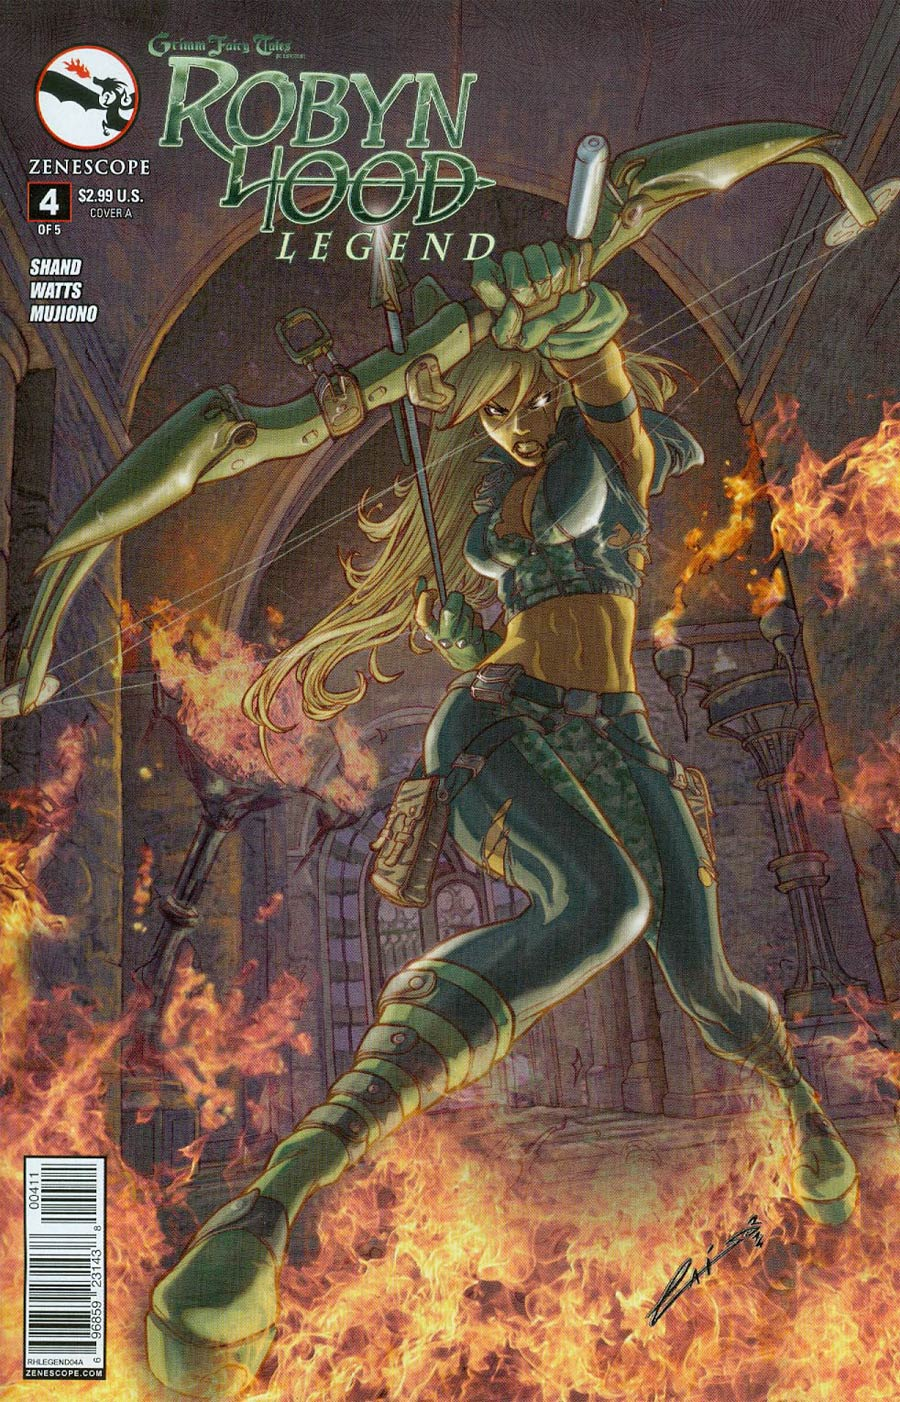 Grimm Fairy Tales Presents Robyn Hood Legend #4 Cover A Emilio Laiso